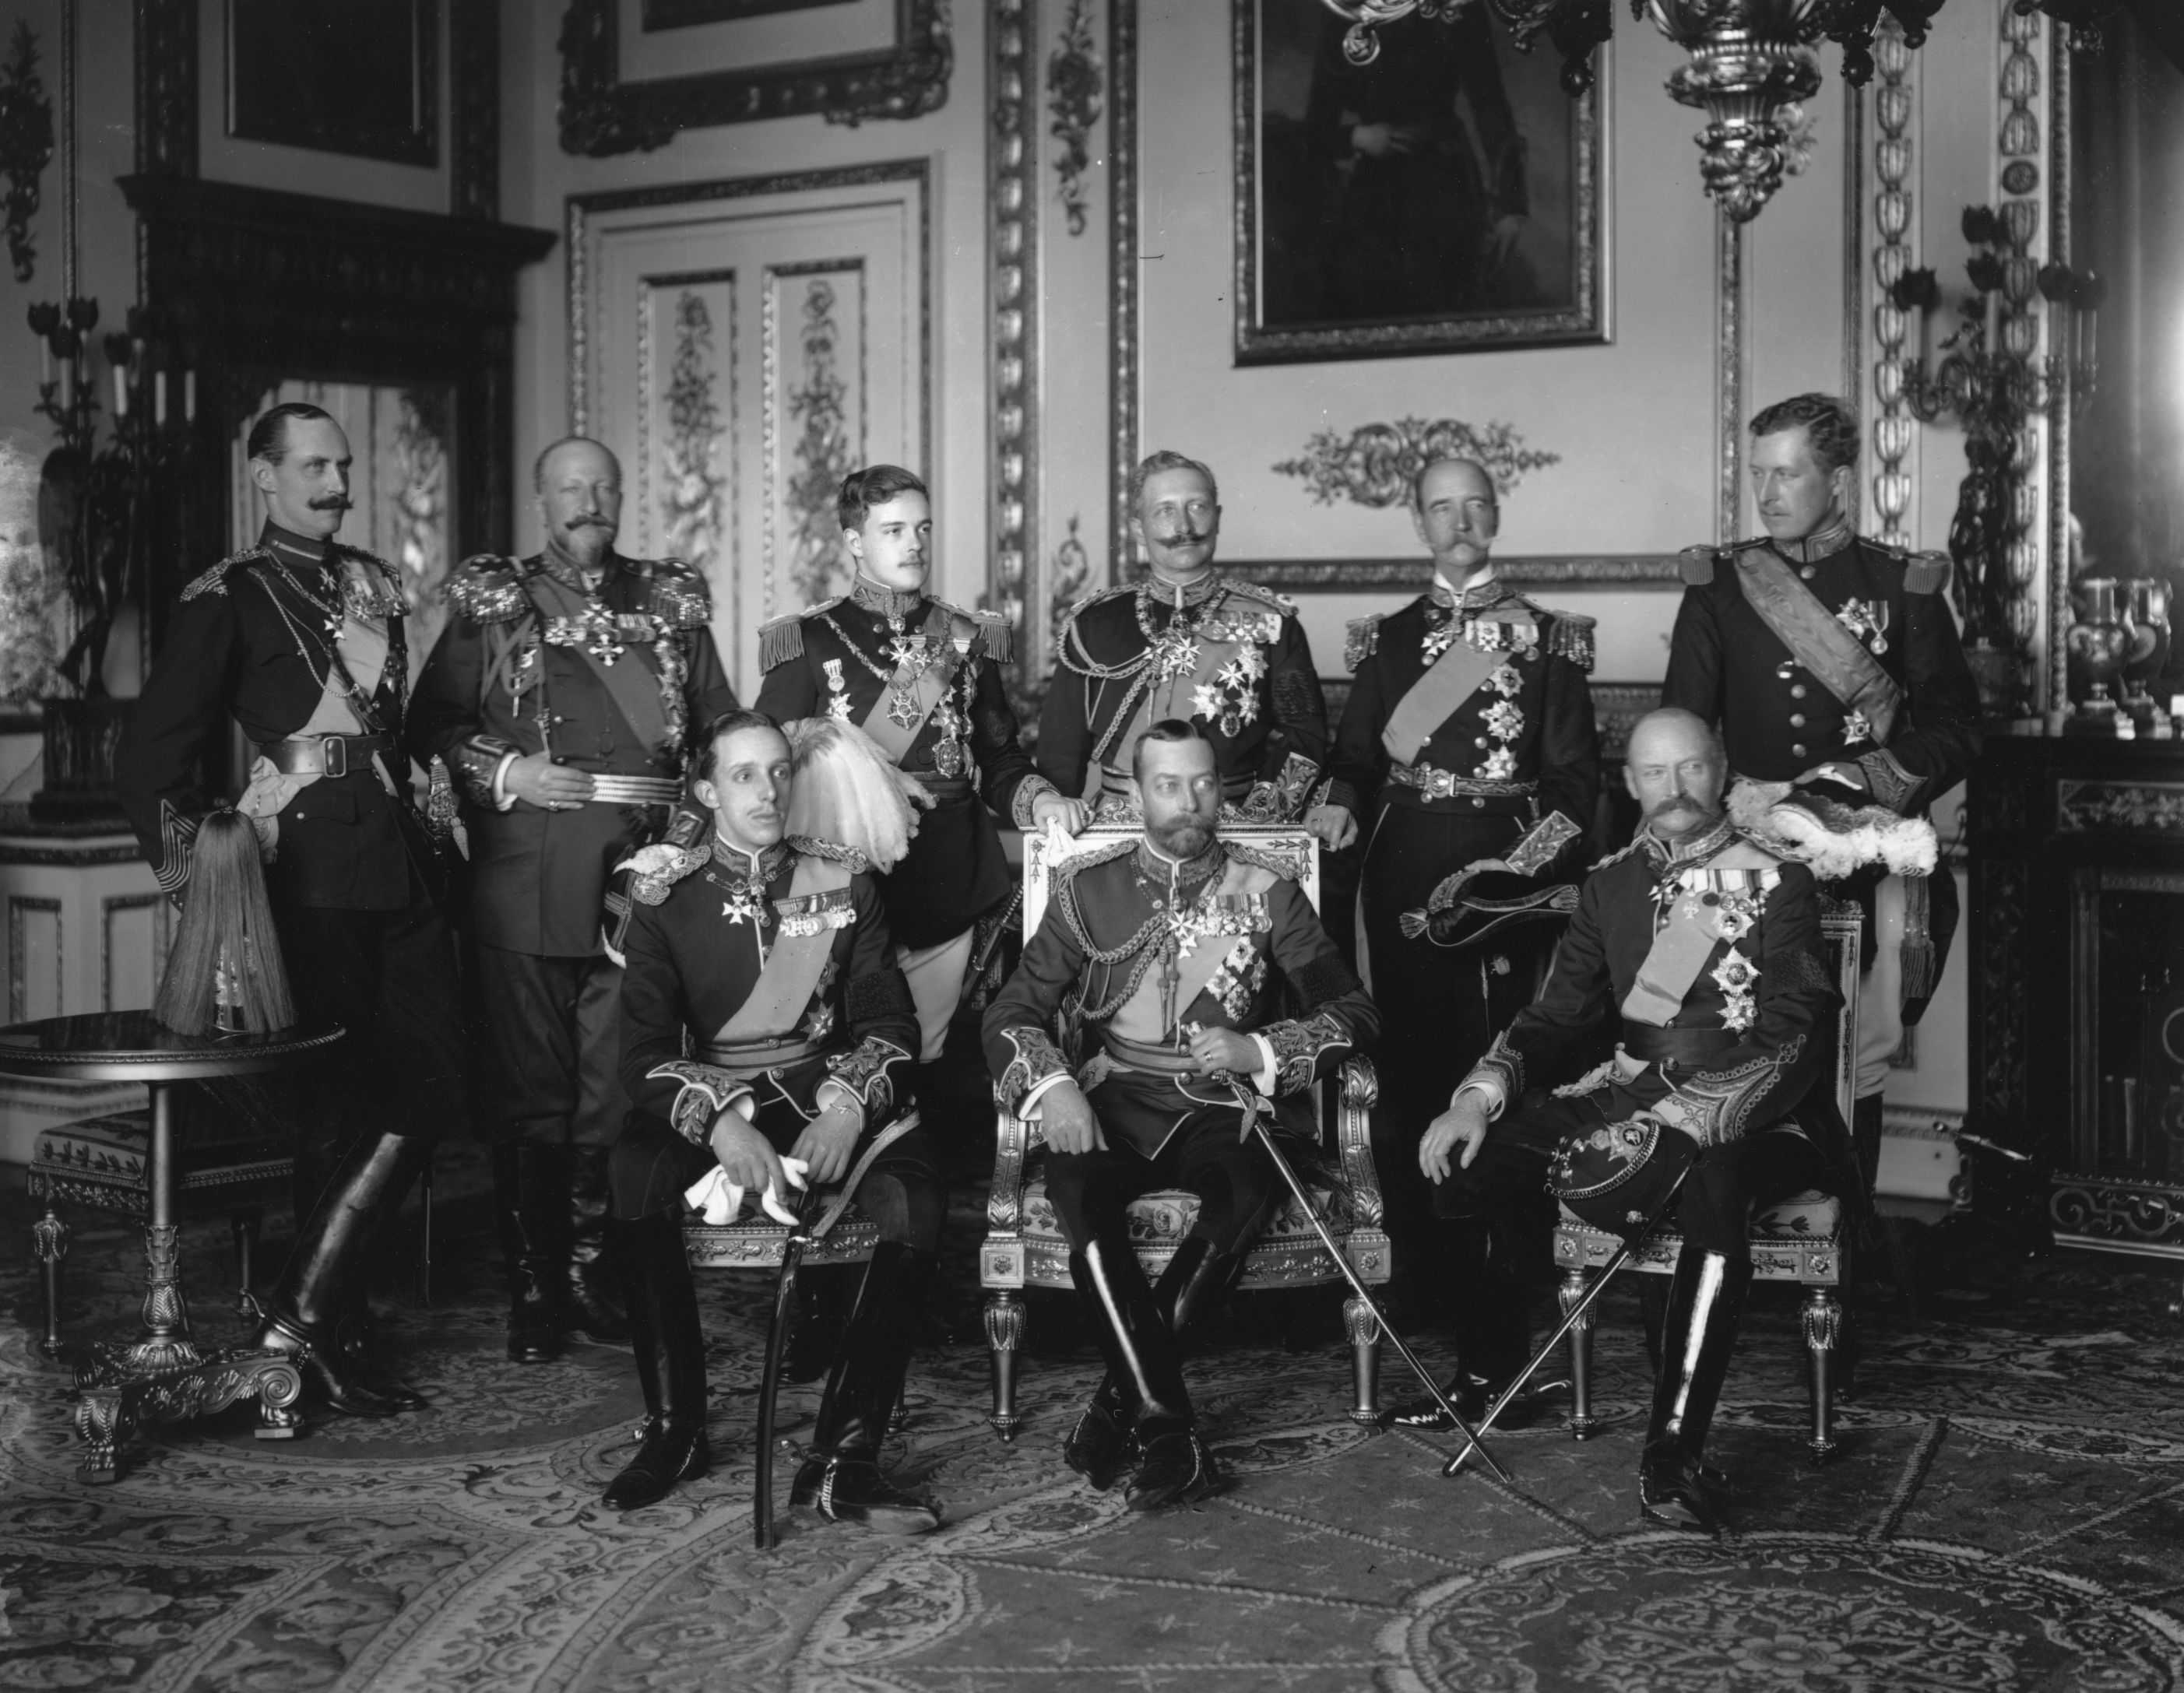 May 1910: Nine Kings assembled at Buckingham Palace for the funeral of Edward VII, the Father of George V (centre). From left to right, back row: Haakon VII of Norway, Ferdinand I of Bulgaria, Manuel II of Portugal, Wilhelm II of Germany, George I of Greece and Albert I Of Belgium. Front row: Alphonso XIII of Spain, George V and Frederick VIII of Denmark. (Photo by W. & D. Downey/Getty Images) Встреча европейских монархов накануне Первой мировой войны. На заднем плане в центре - германский кайзер Вильгельм II. На заднем плане крайний справа - король Бельгии Альберт I.